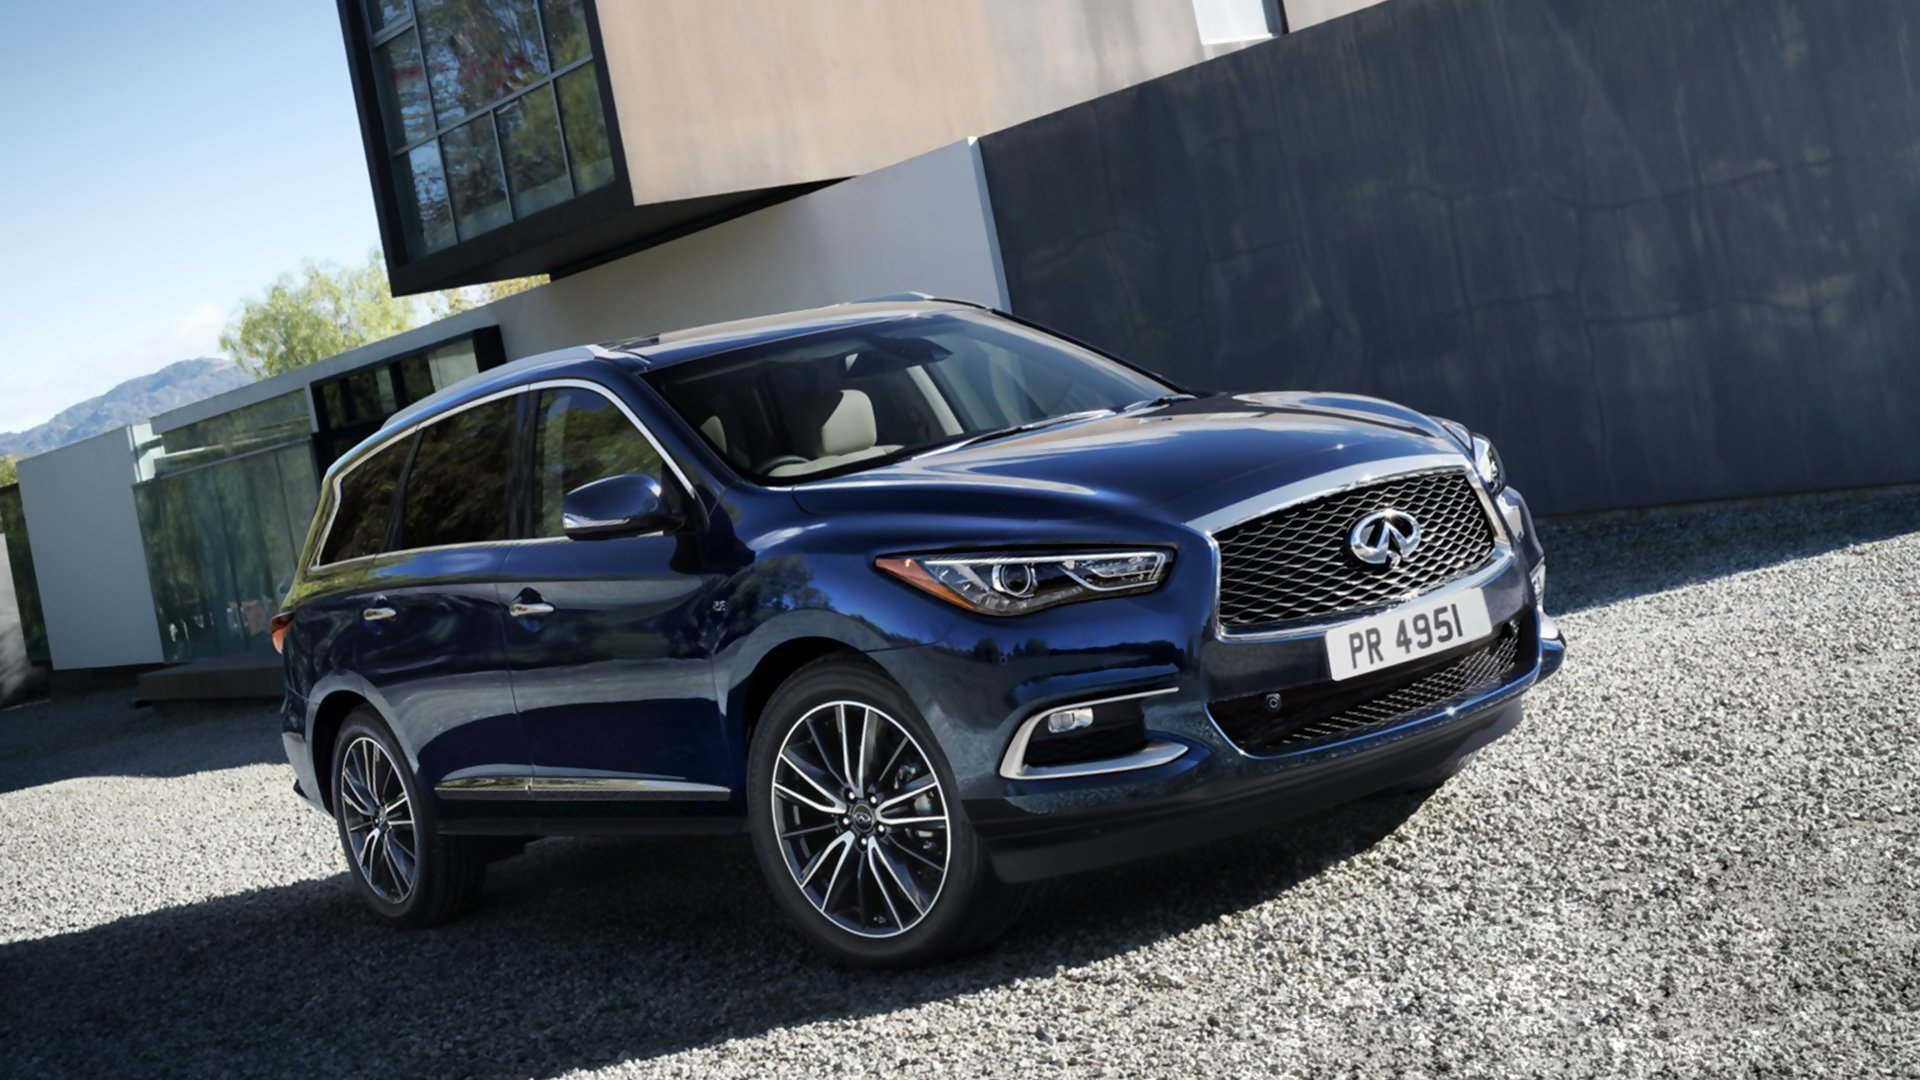 New 2019 Infiniti QX60 Exterior Changes